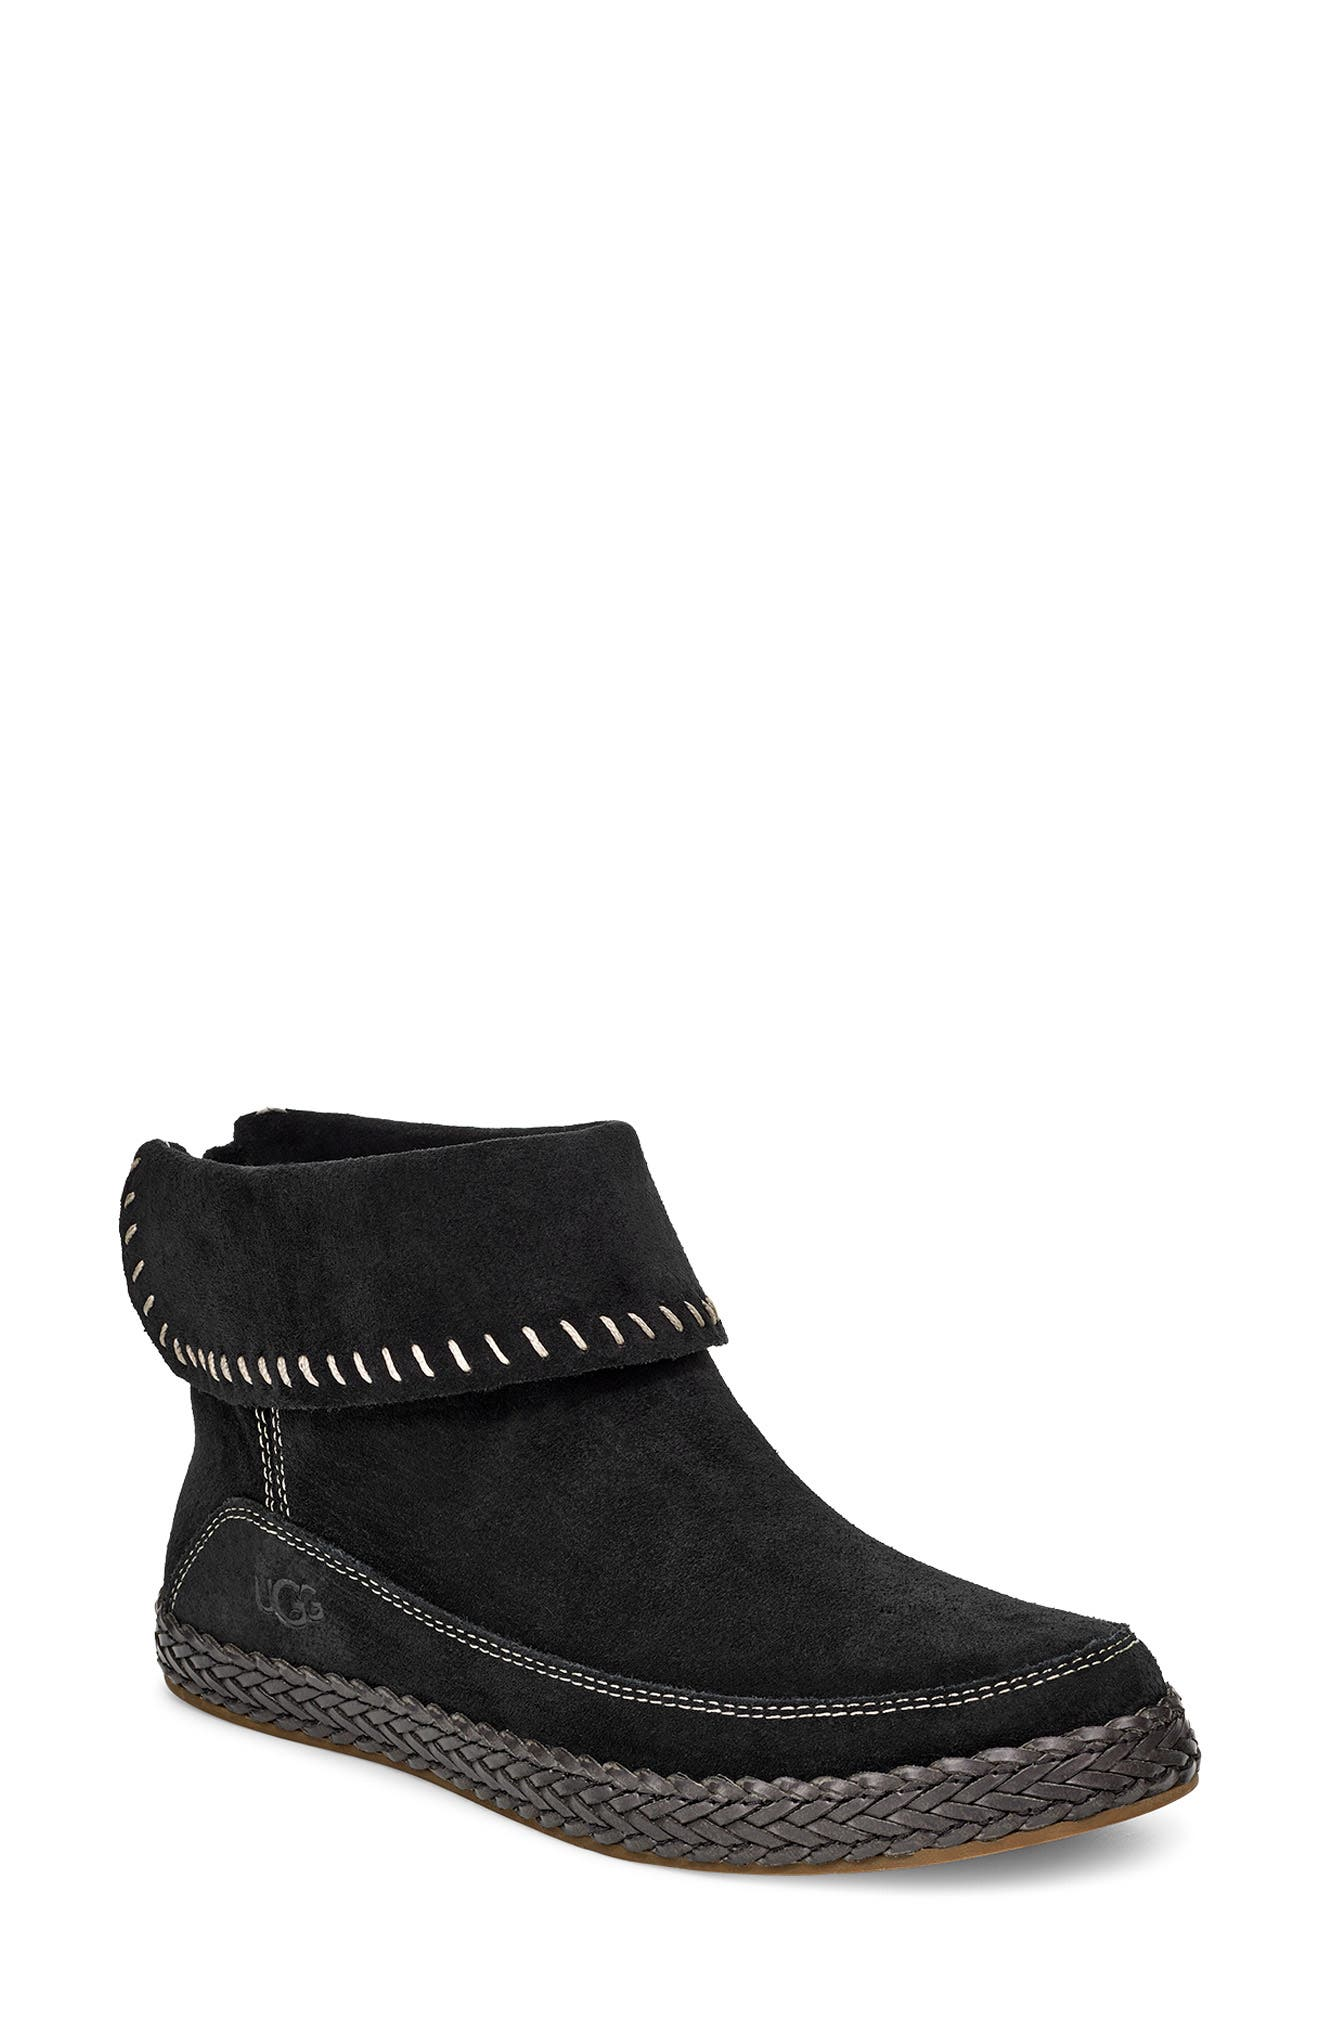 55df3ad8111 Women's UGG® Booties & Ankle Boots | Nordstrom